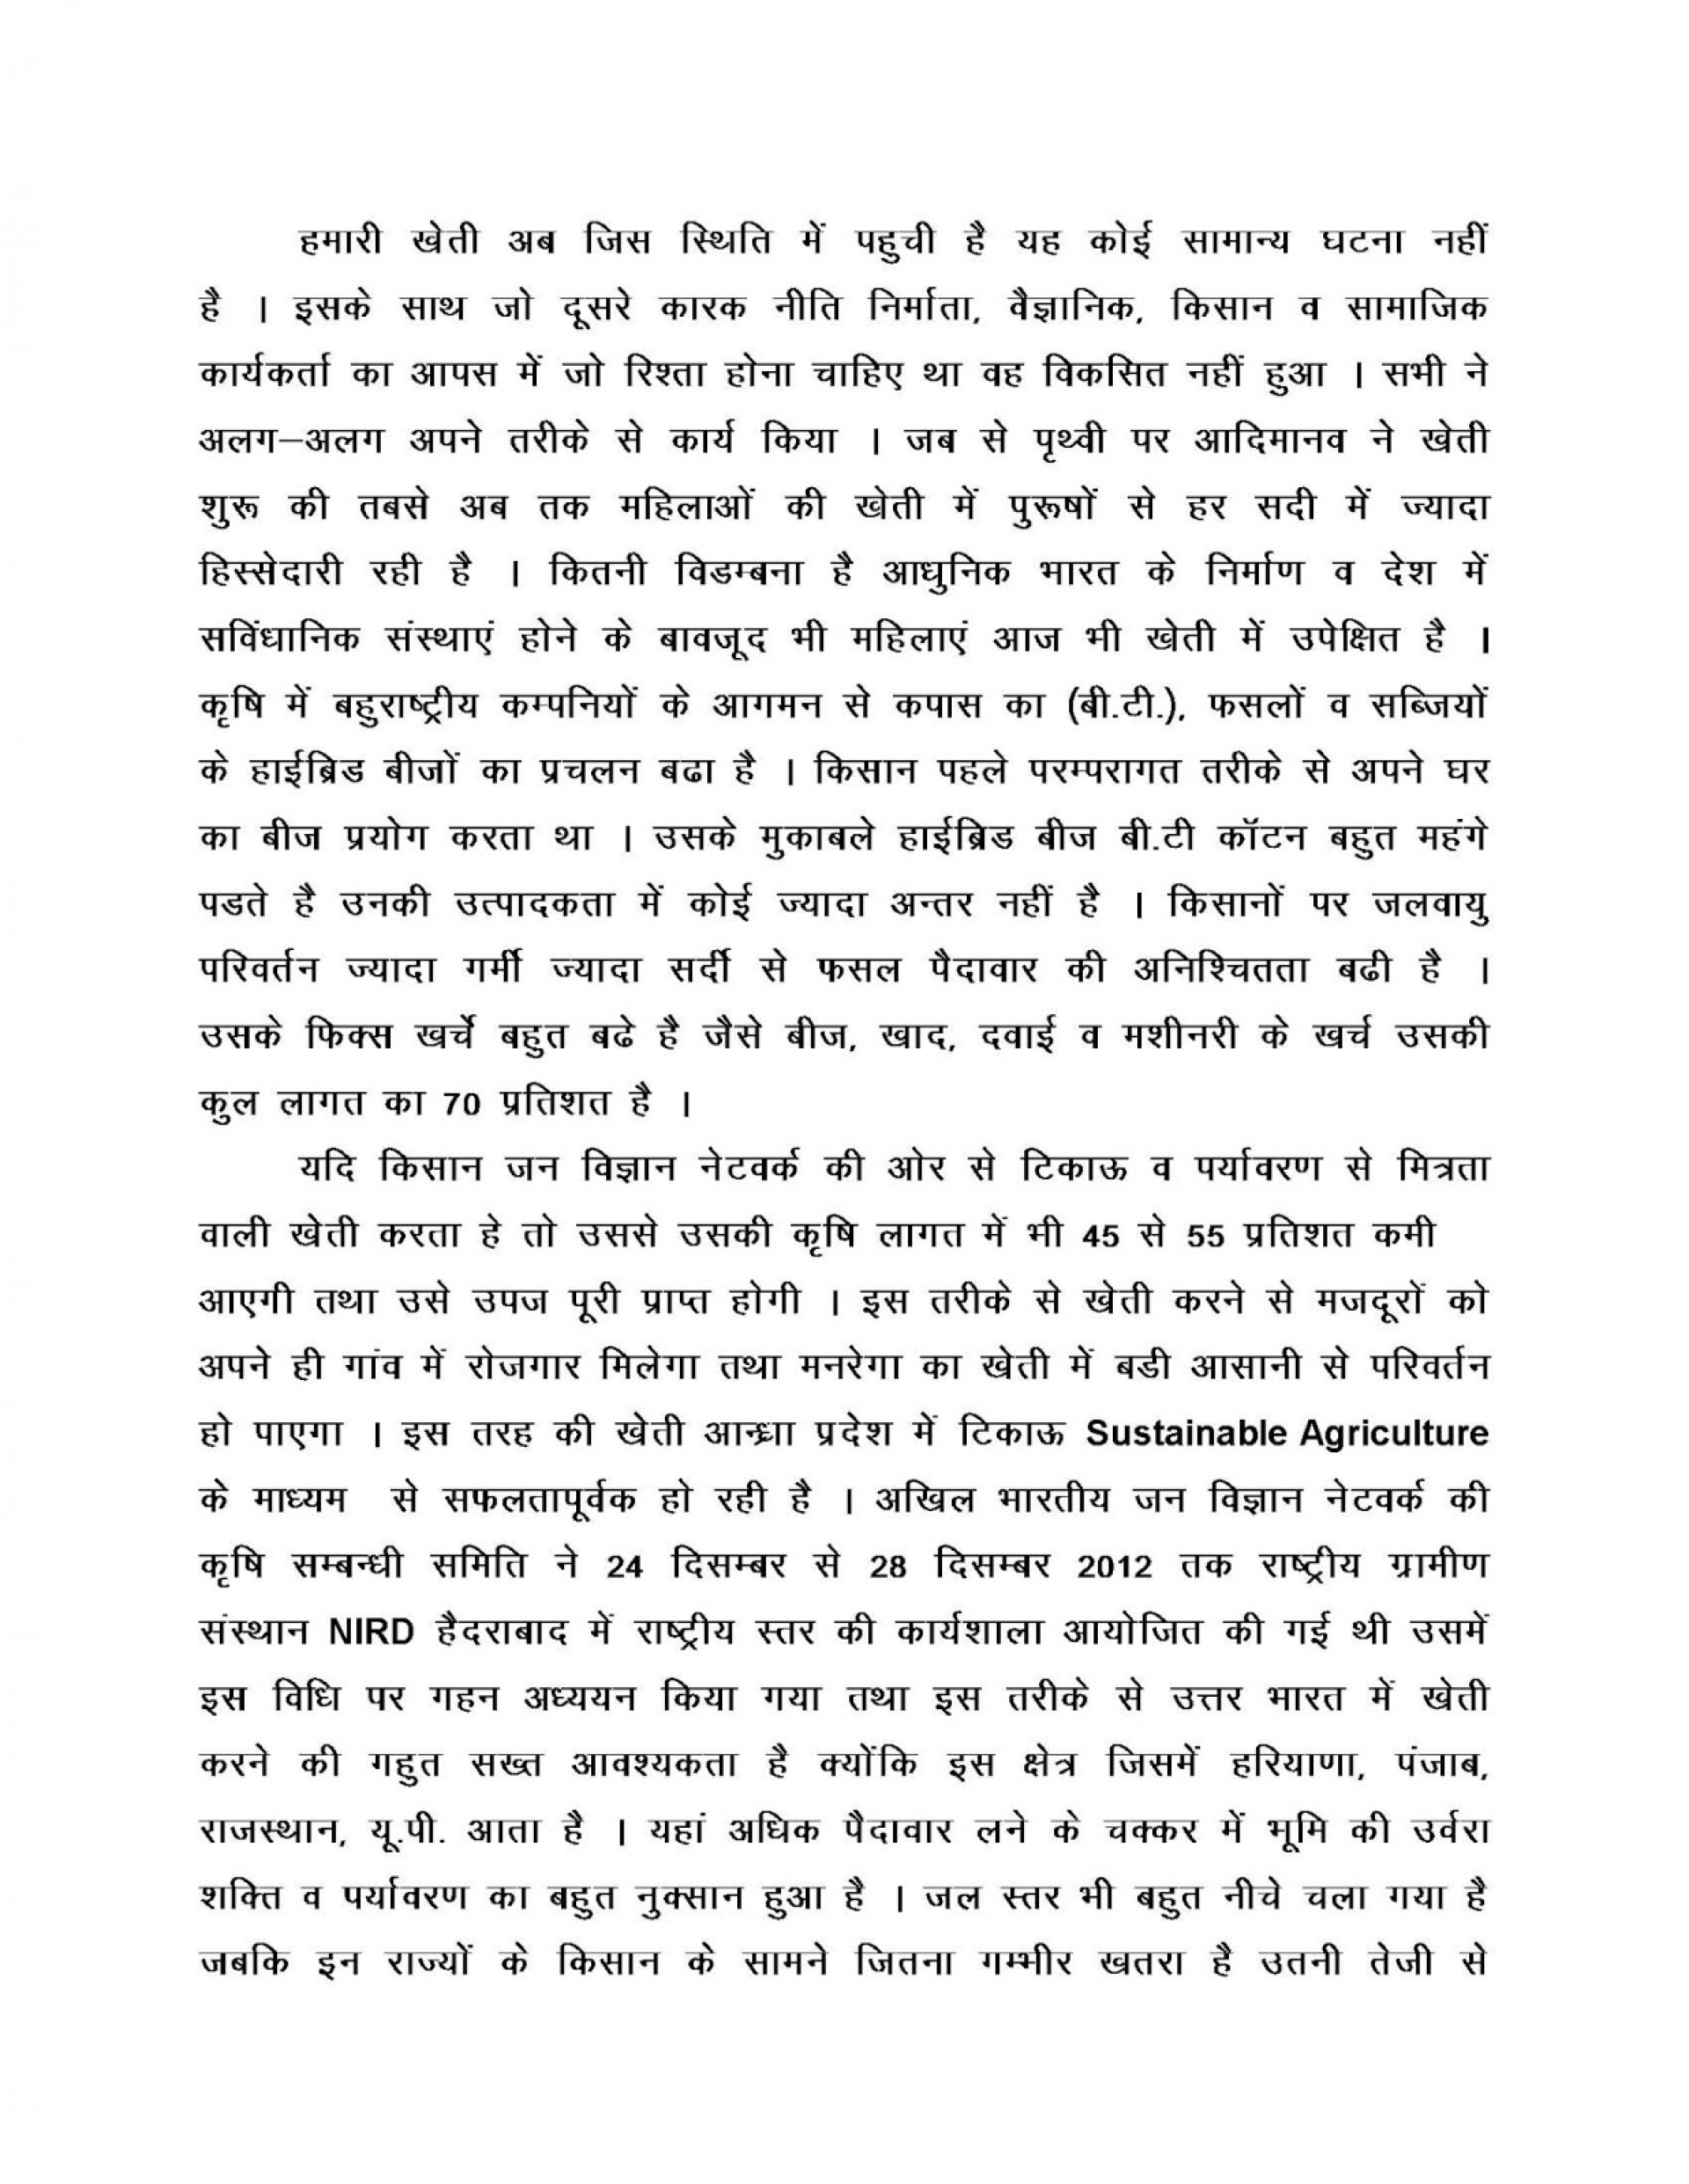 007 Essay Example Hindiworkdr Rajindersingh Page 3 Gender Equality In The Wondrous Workplace Examples Of Inequality Argumentative Outline 1920